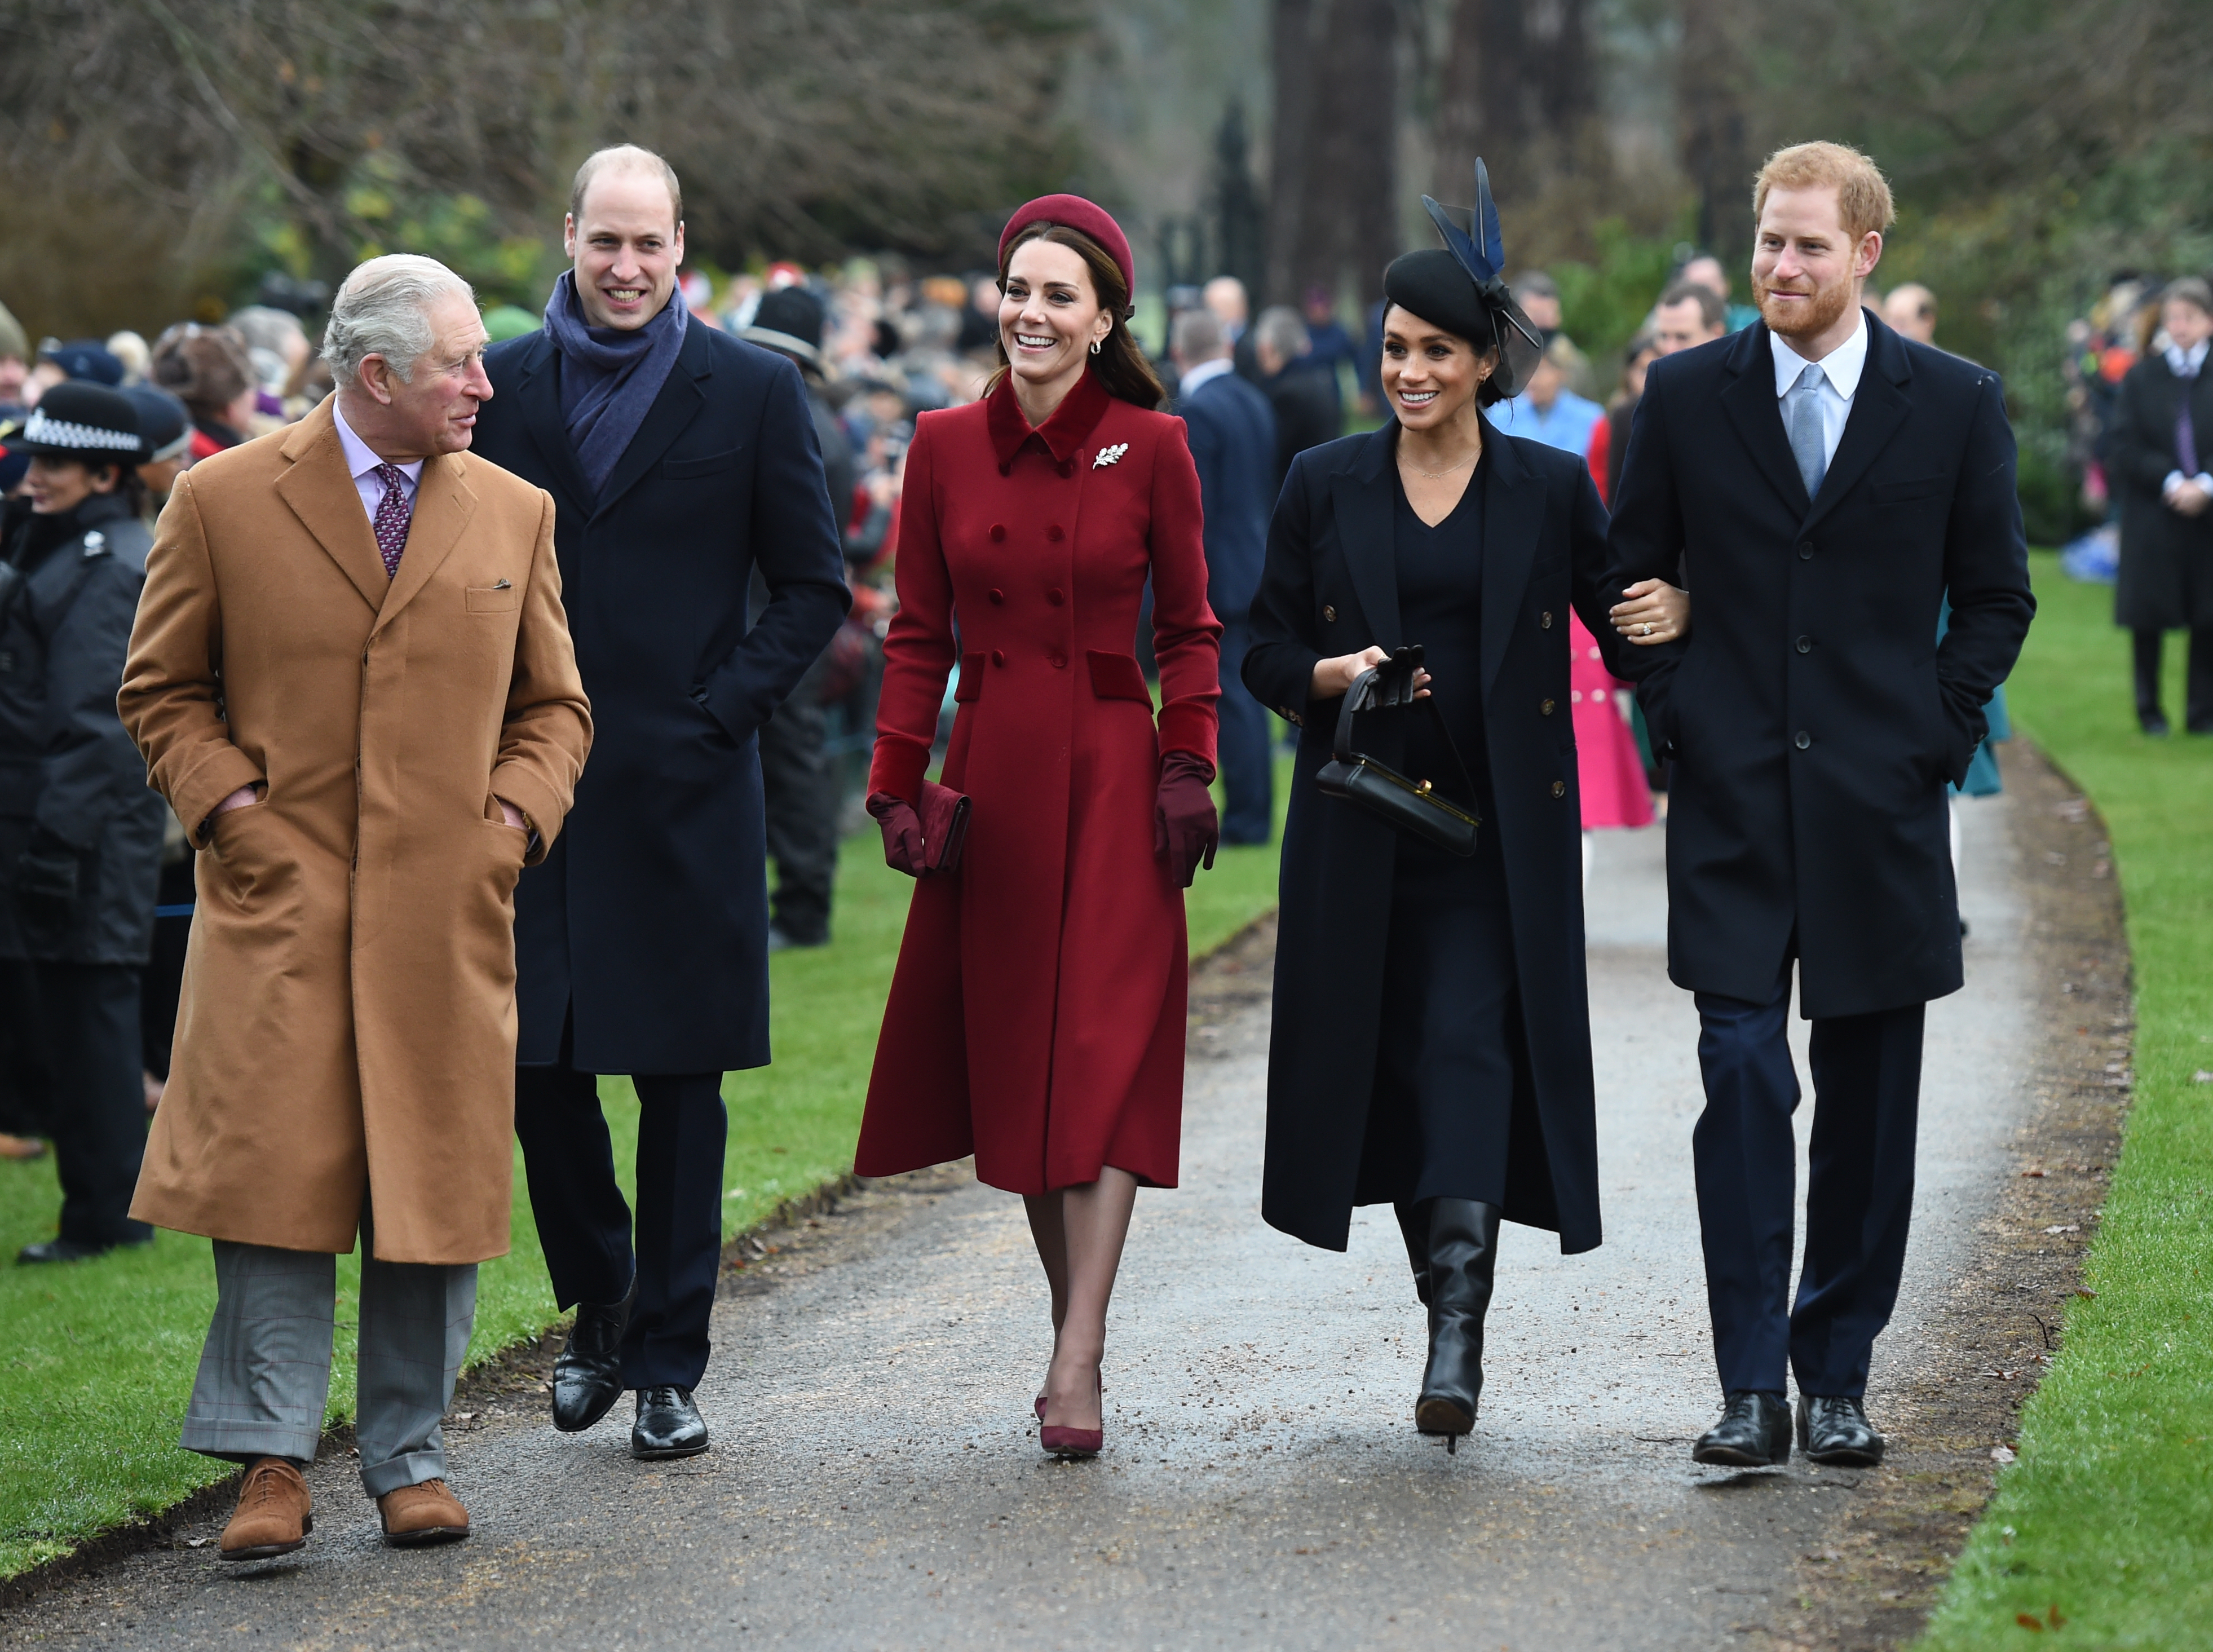 Royal Family Christmas.The Queen And Members Of The Royal Family Attend Church On